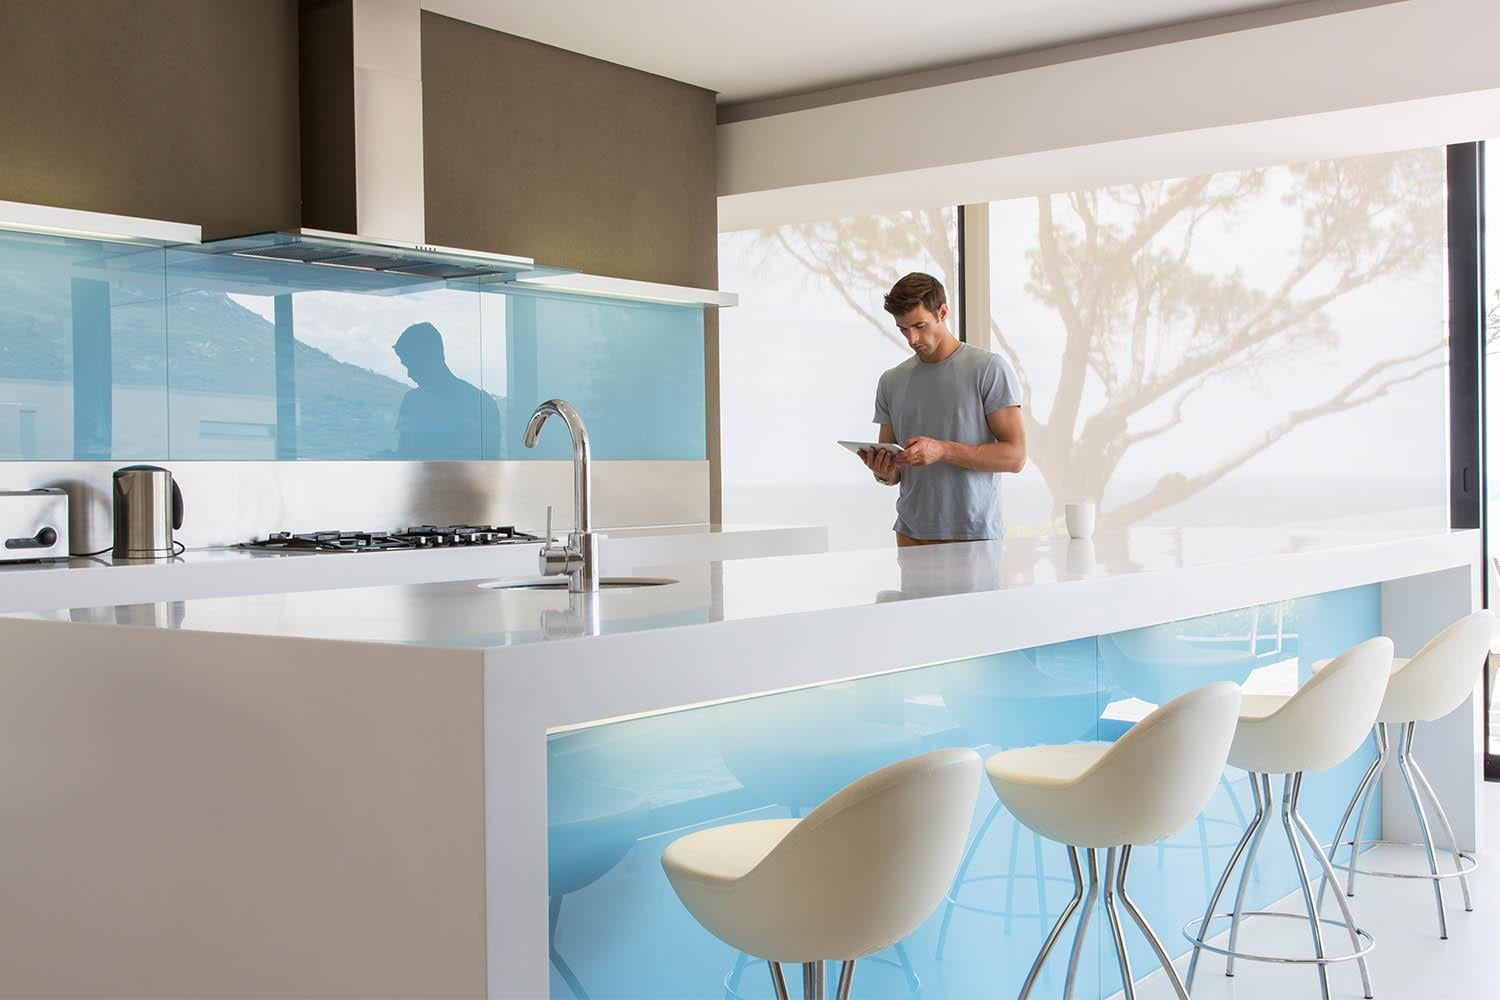 Man standing in kitchen looking at tablet